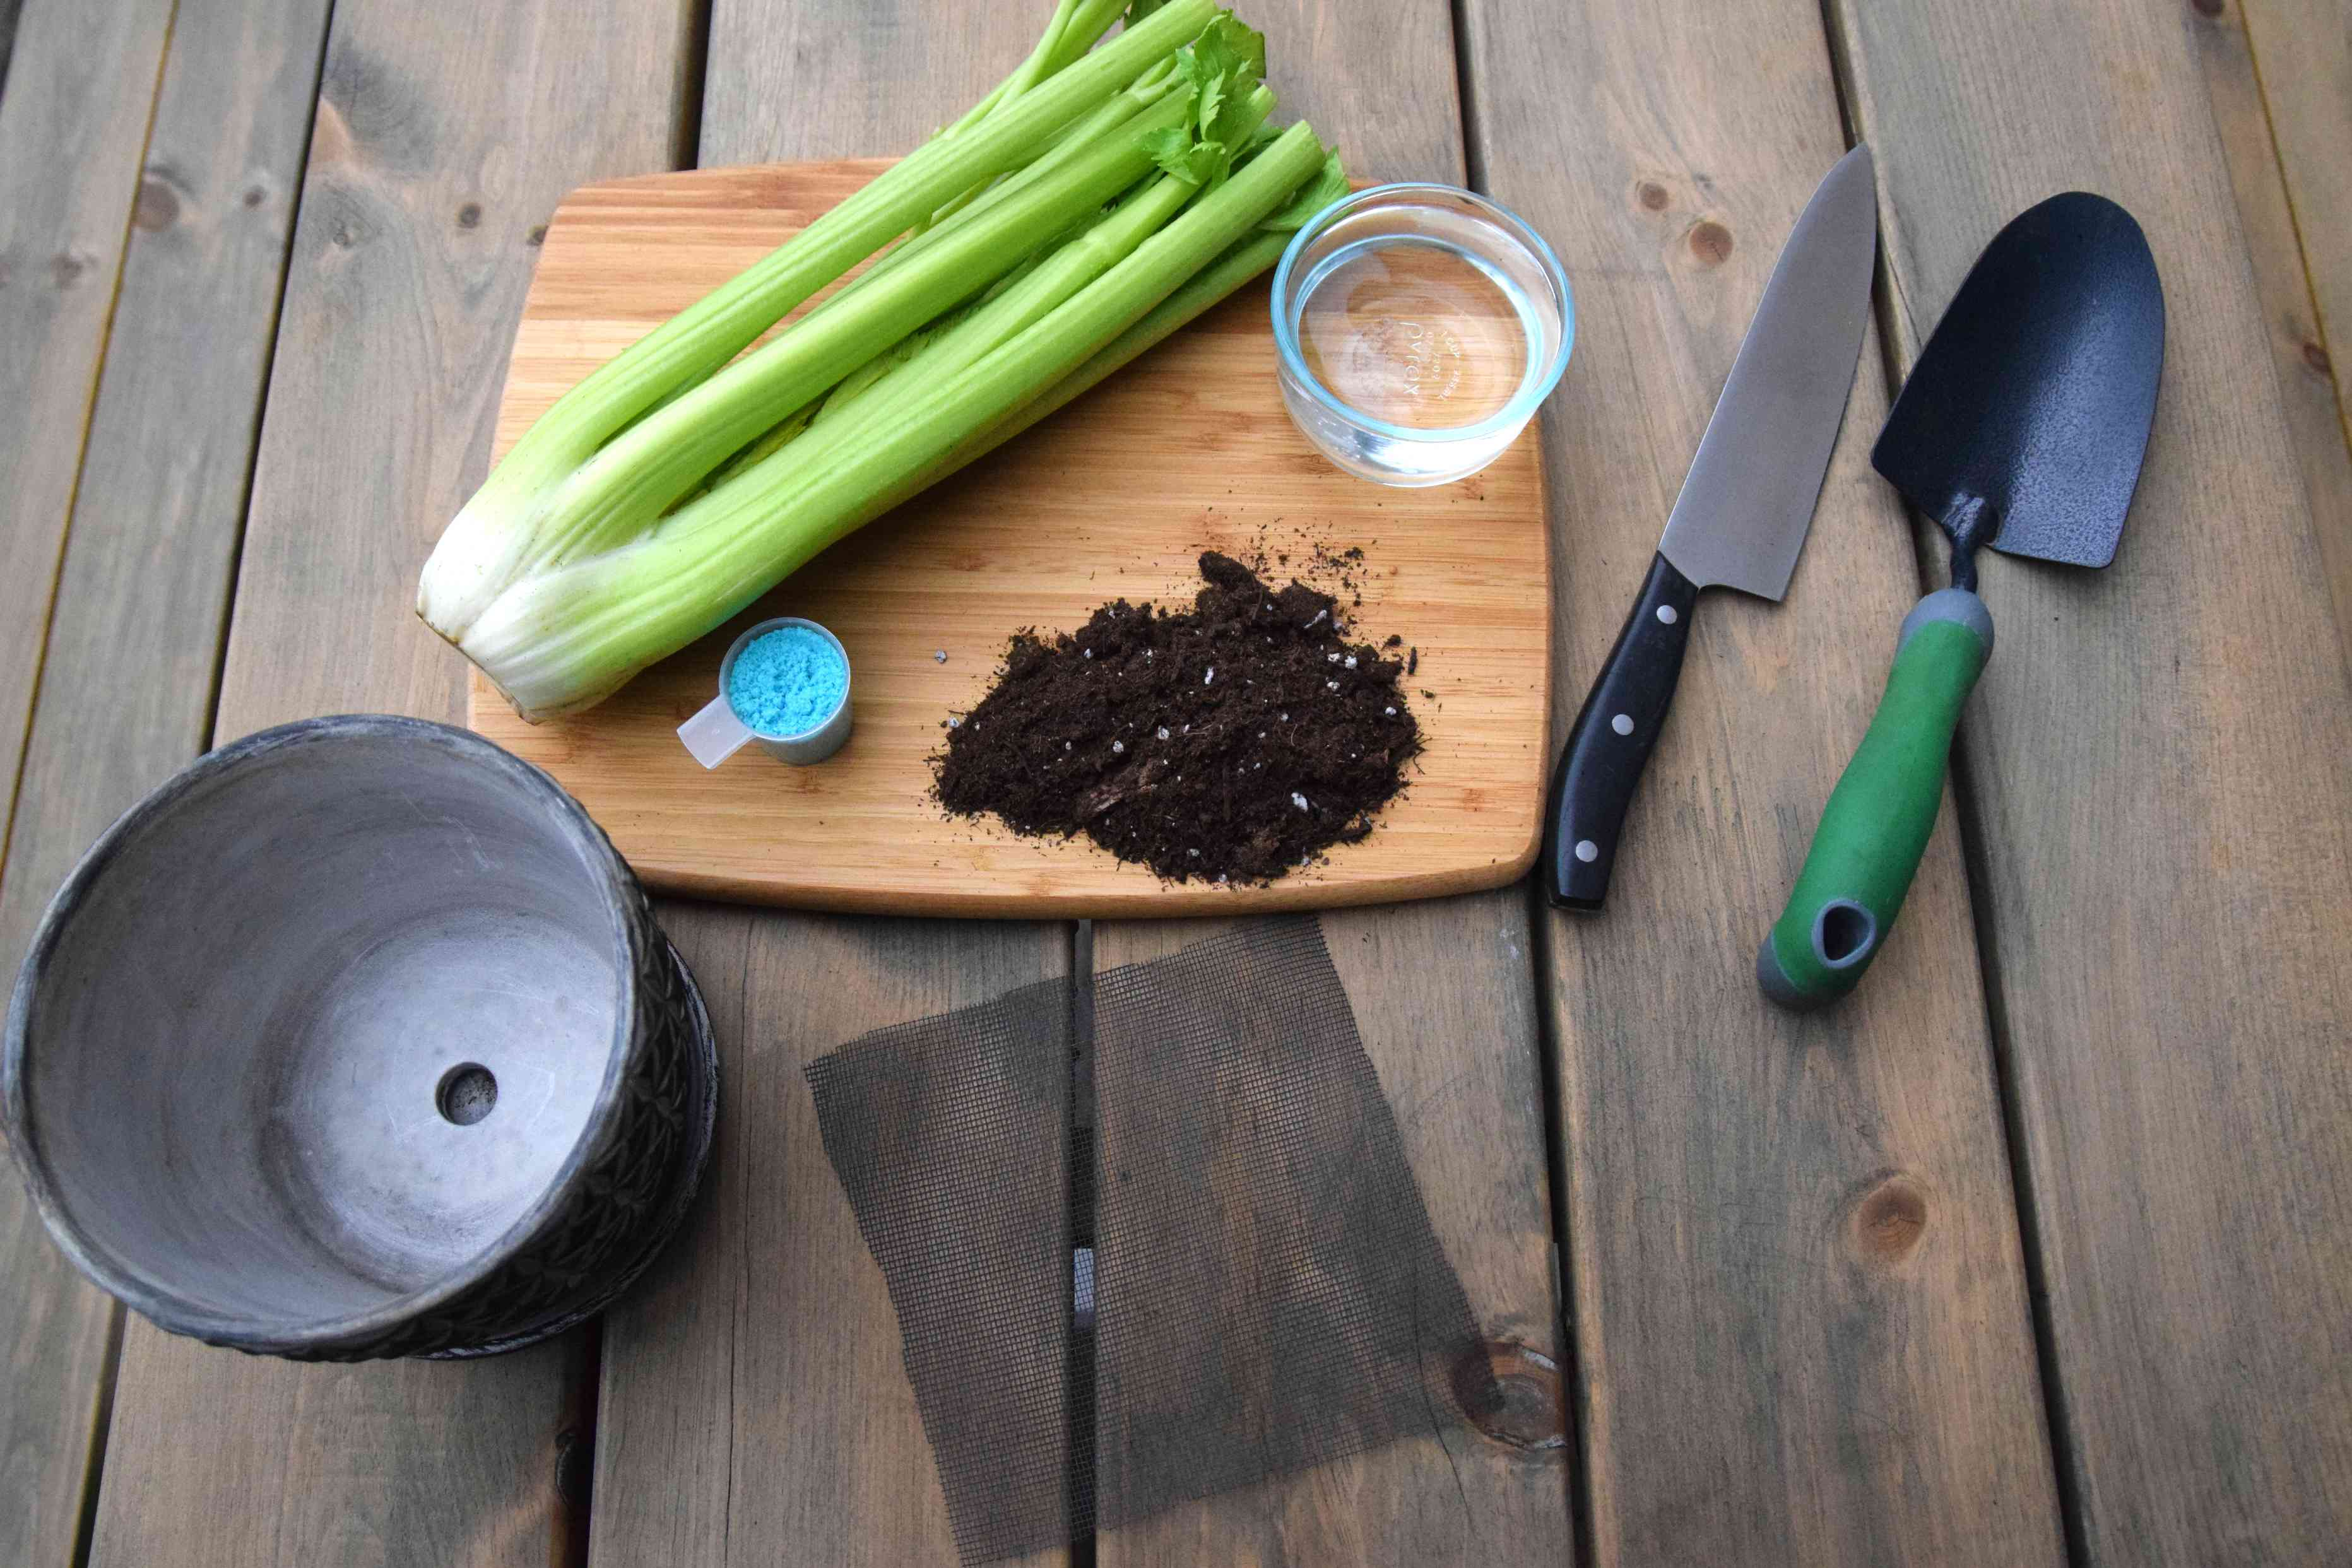 materials for growing celery from the base